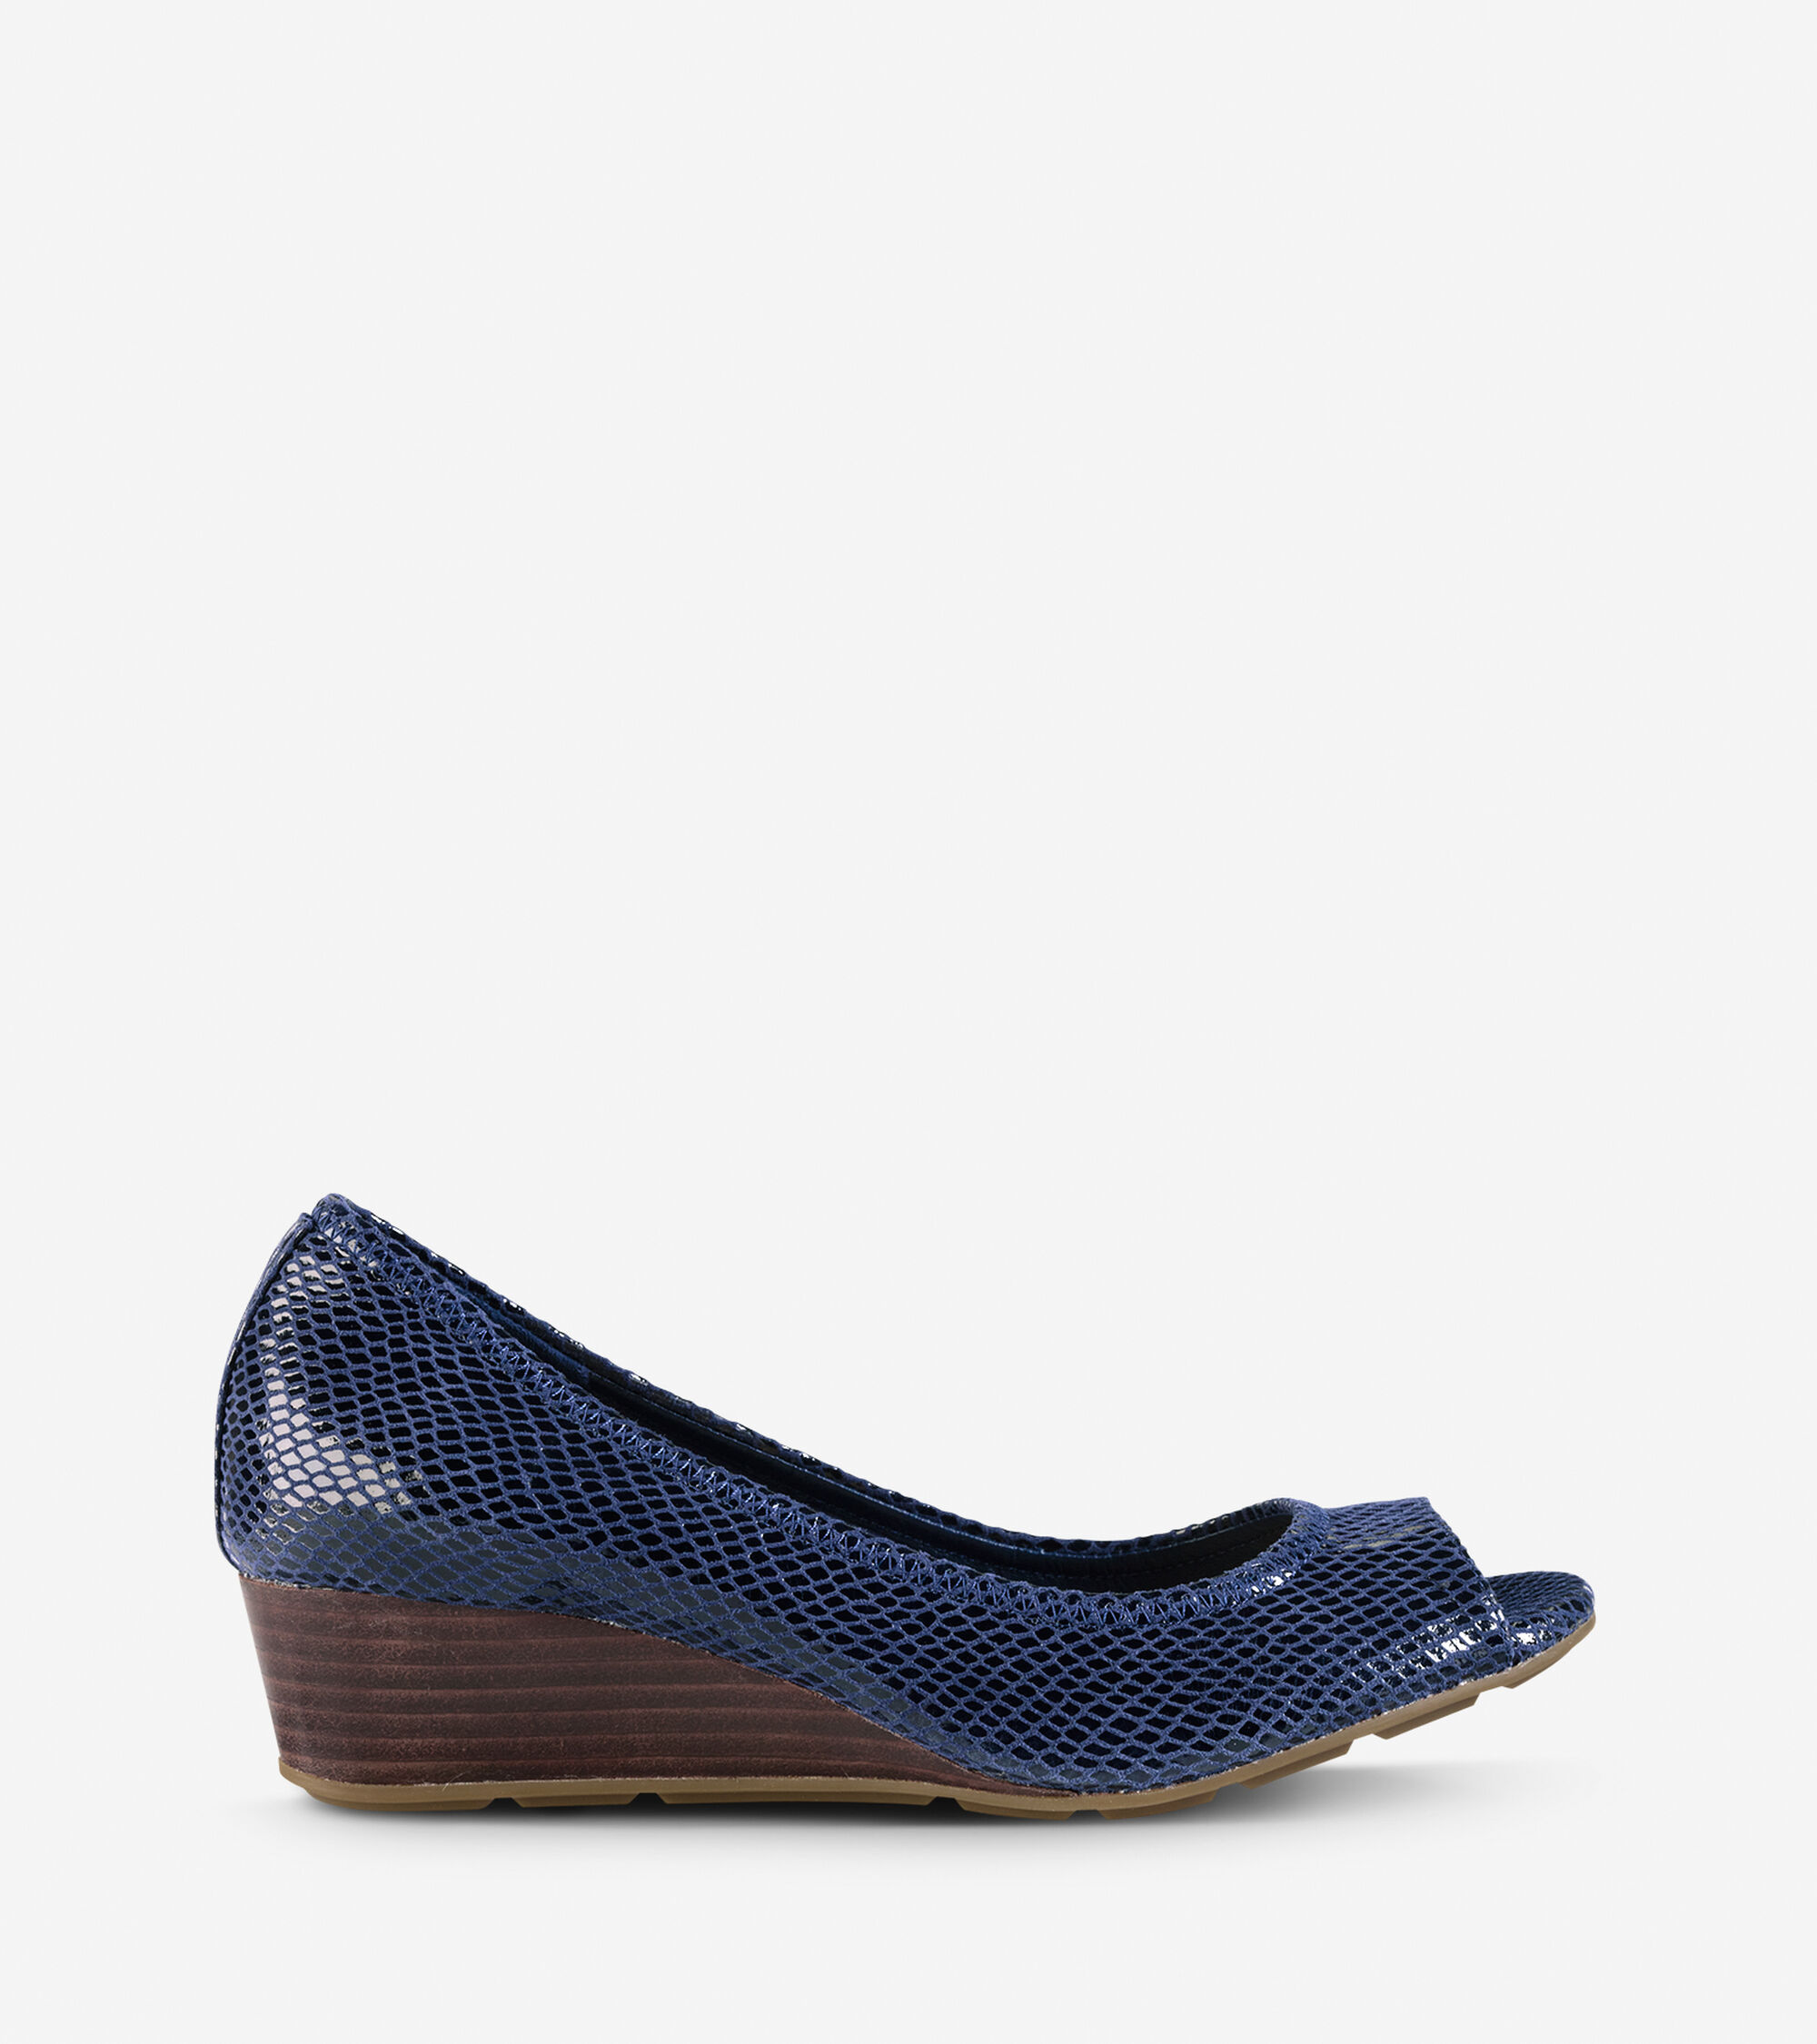 Ballet Flats & Wedges > Air Tali Open Toe Wedge (40mm)